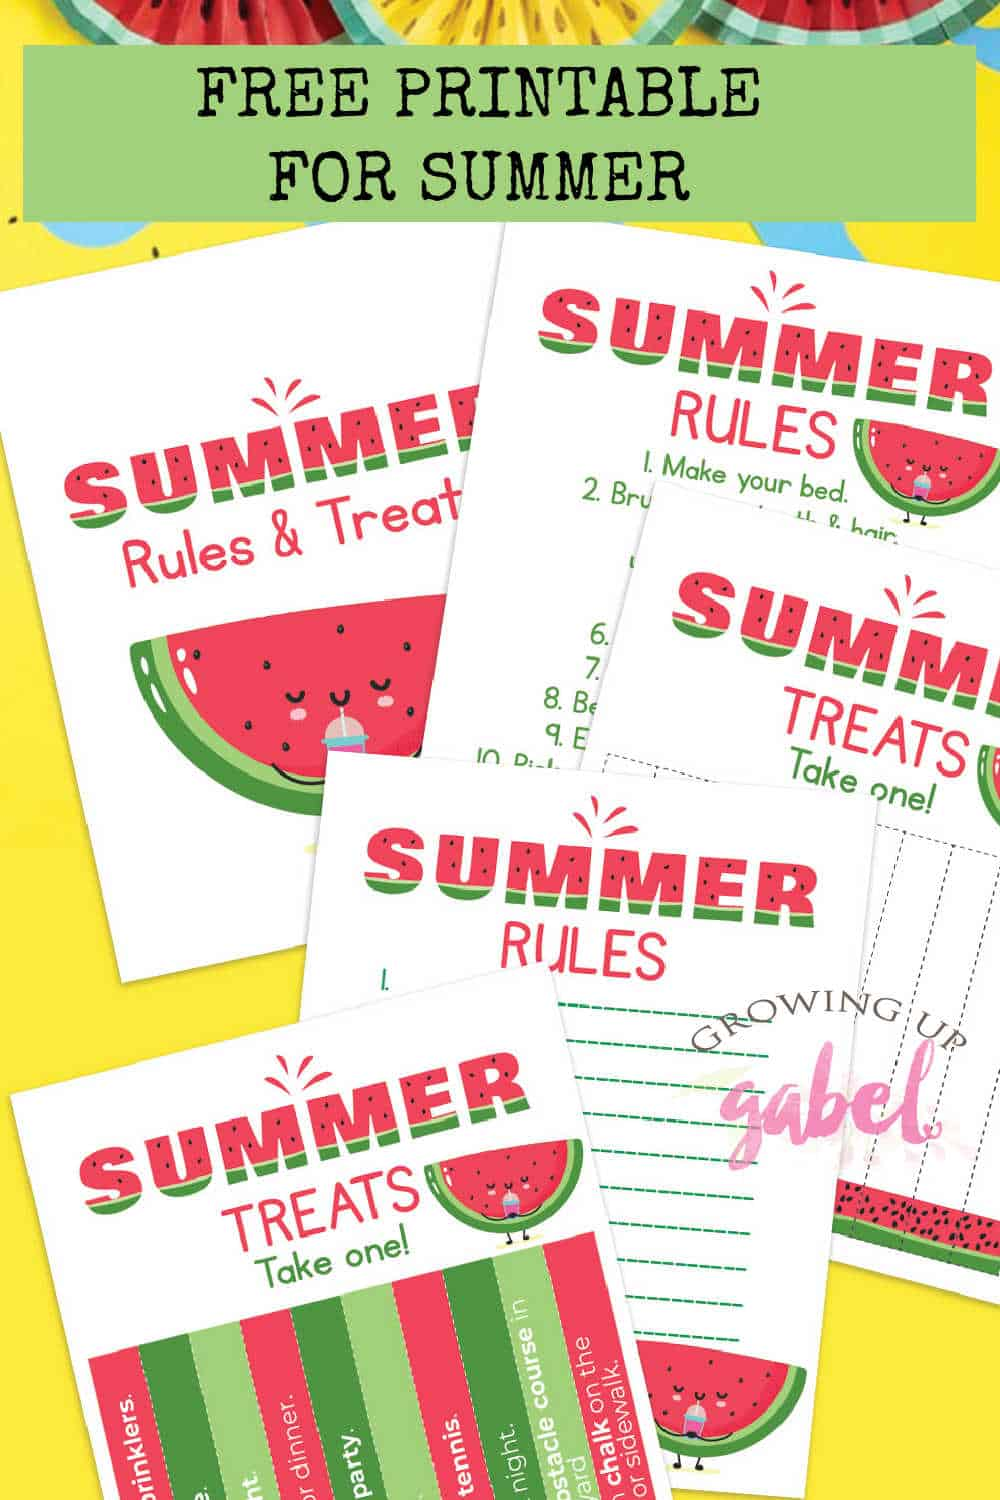 summer rules and summer treats printable with watermelons